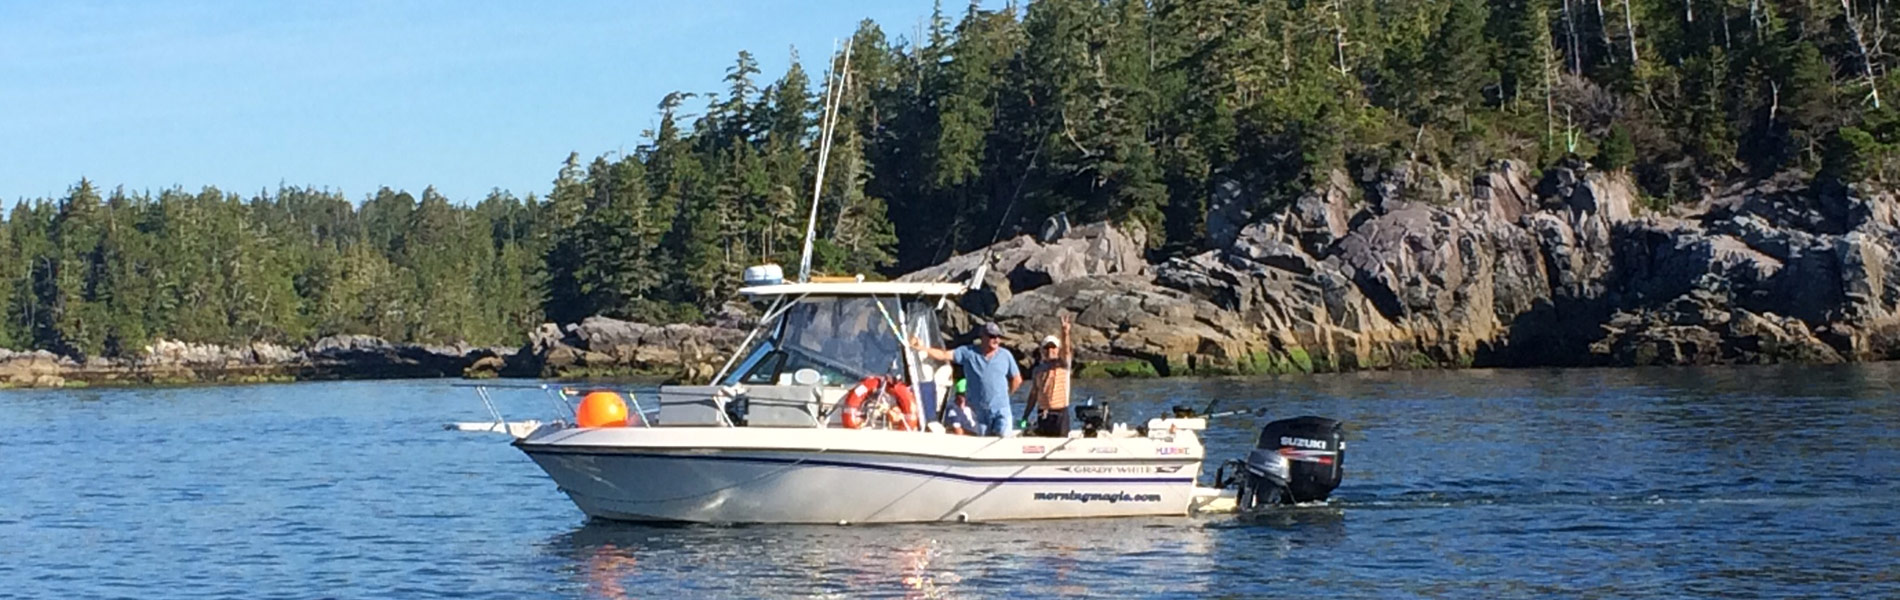 Fishing boat with 2 men in water near Ucluelet